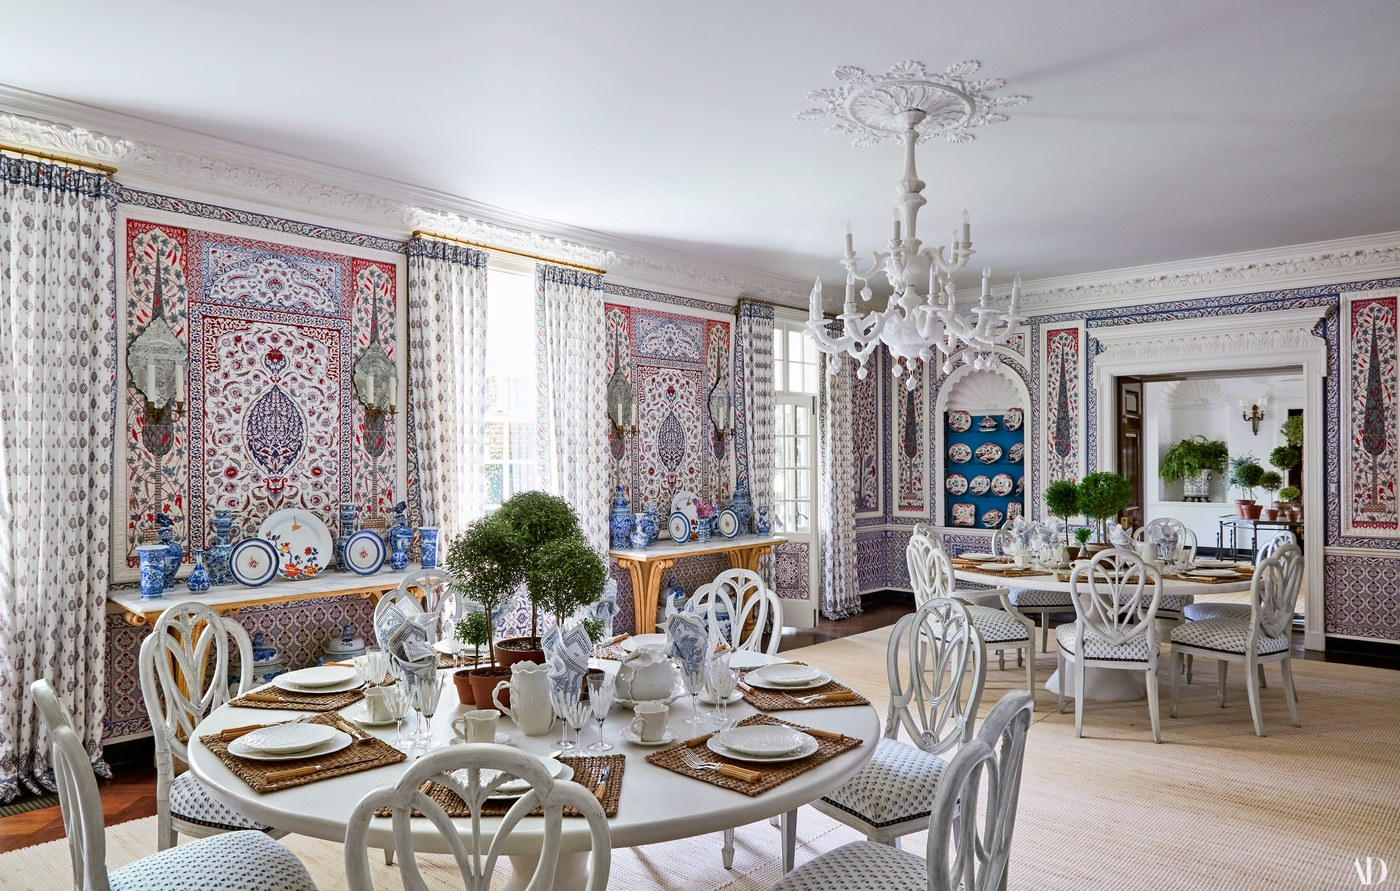 Tory Burch's dining room in her Southampton home. Iksel decorative arts on the walls